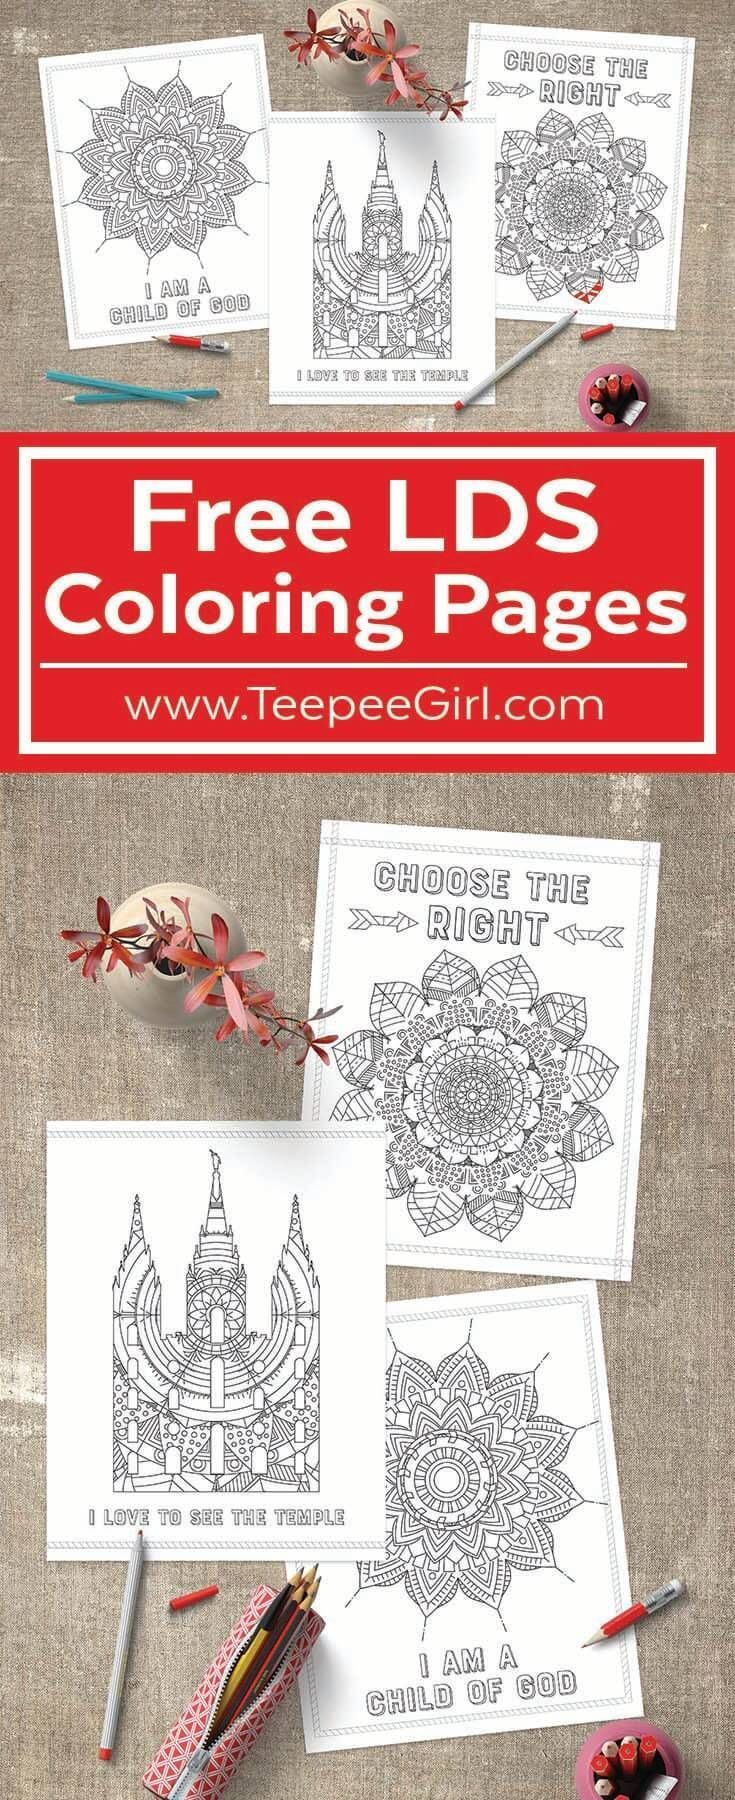 Free LDS Coloring Pages #churchitems